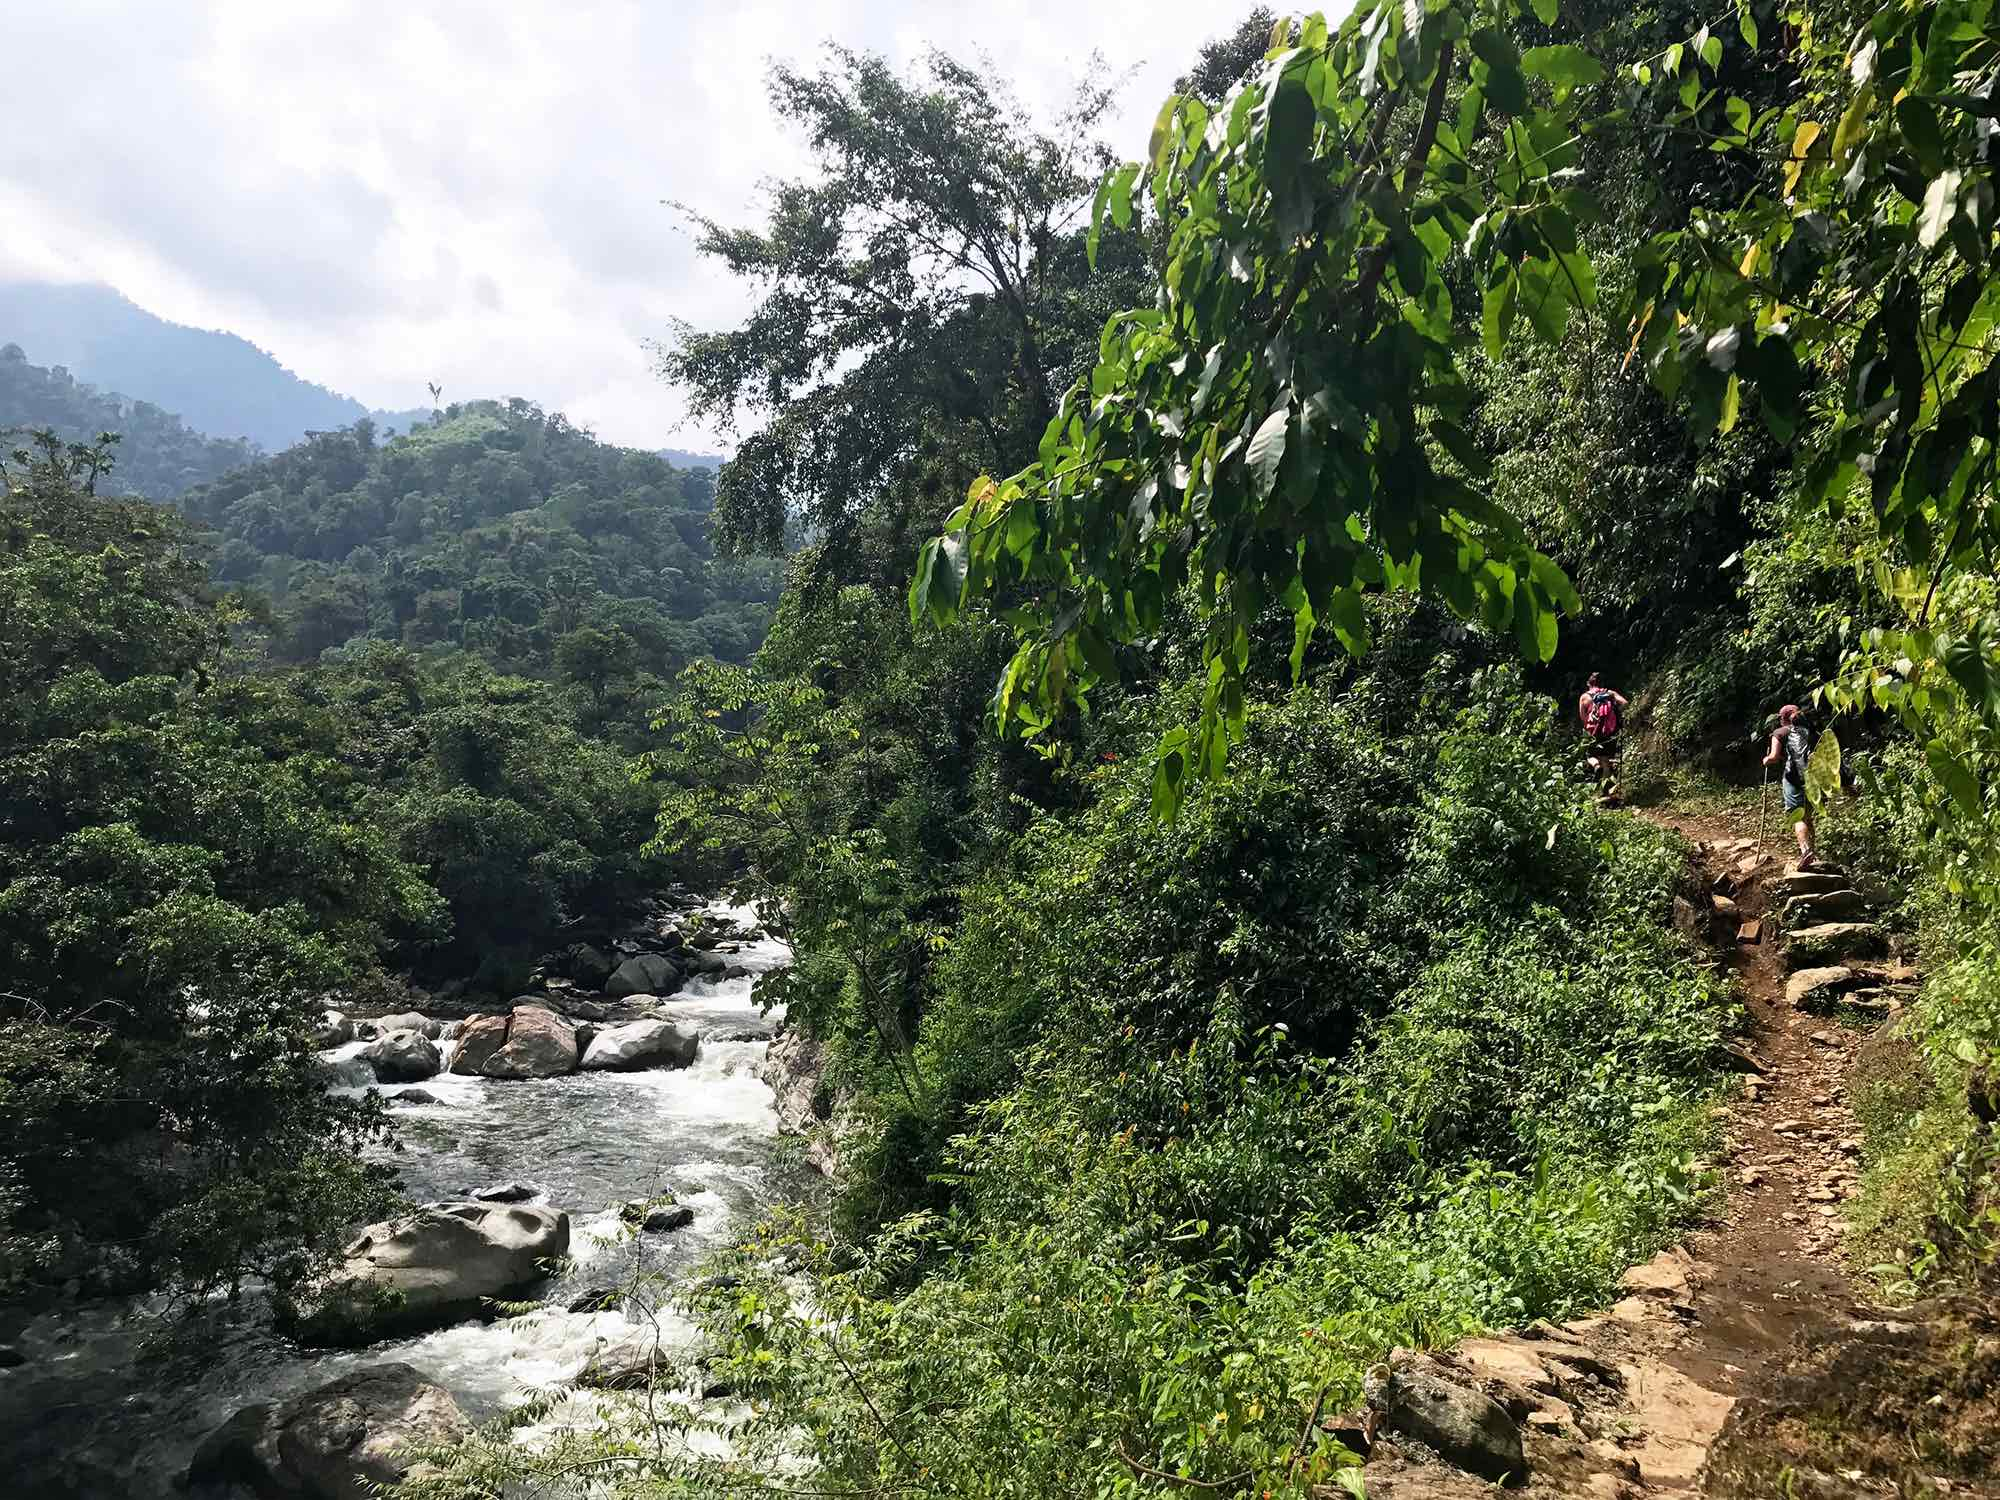 Lost-City-Colombia-hiking-jungle-views2.jpg